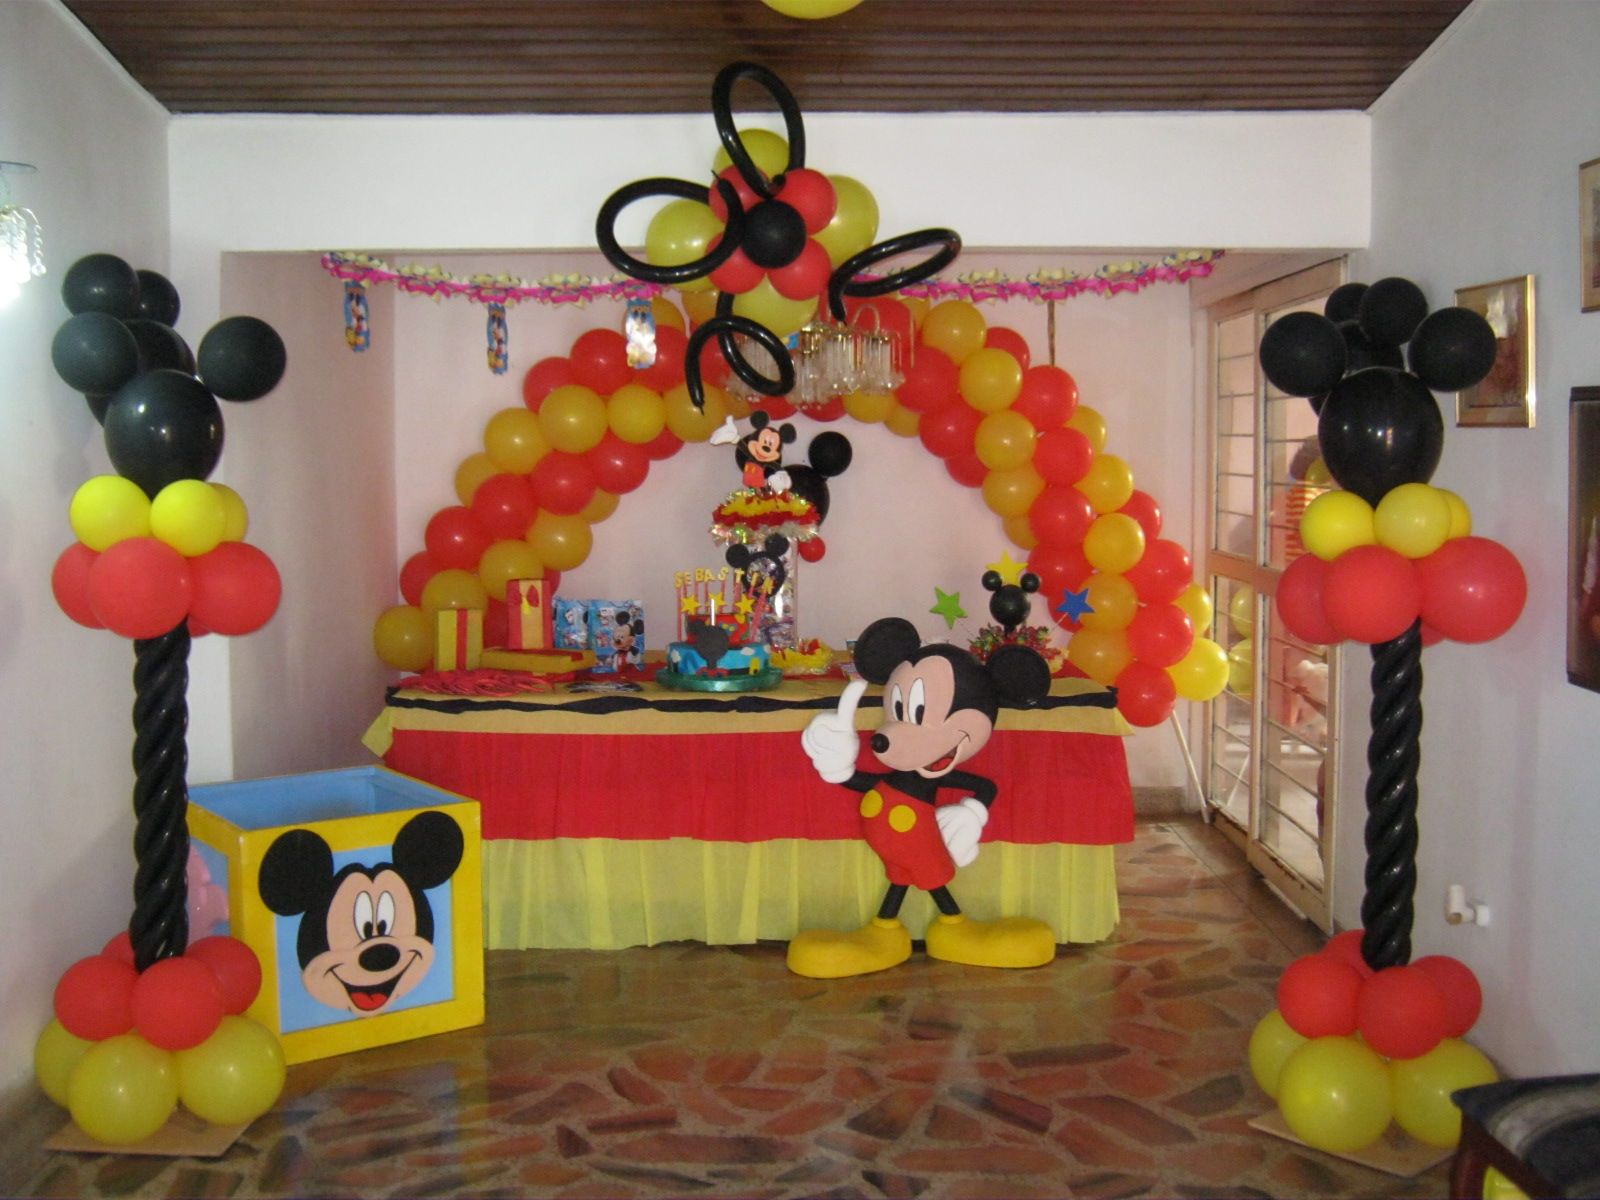 Majestik eventos: FIESTA MICKEY MOUSE